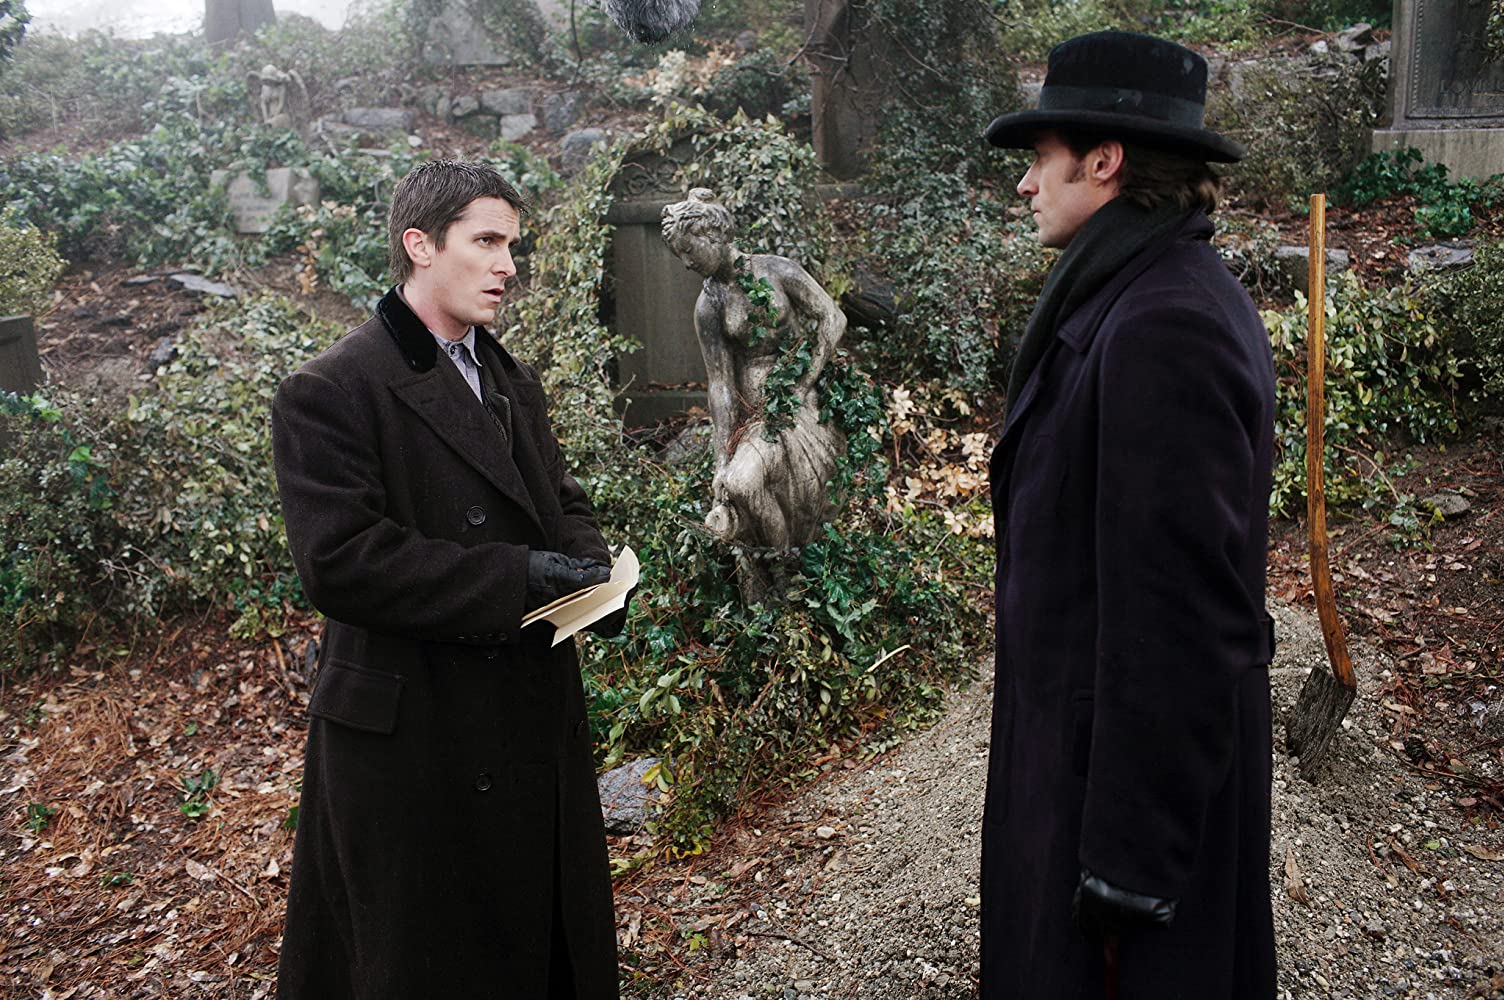 Christian Bale and Hugh Jackman in The Prestige (2006)